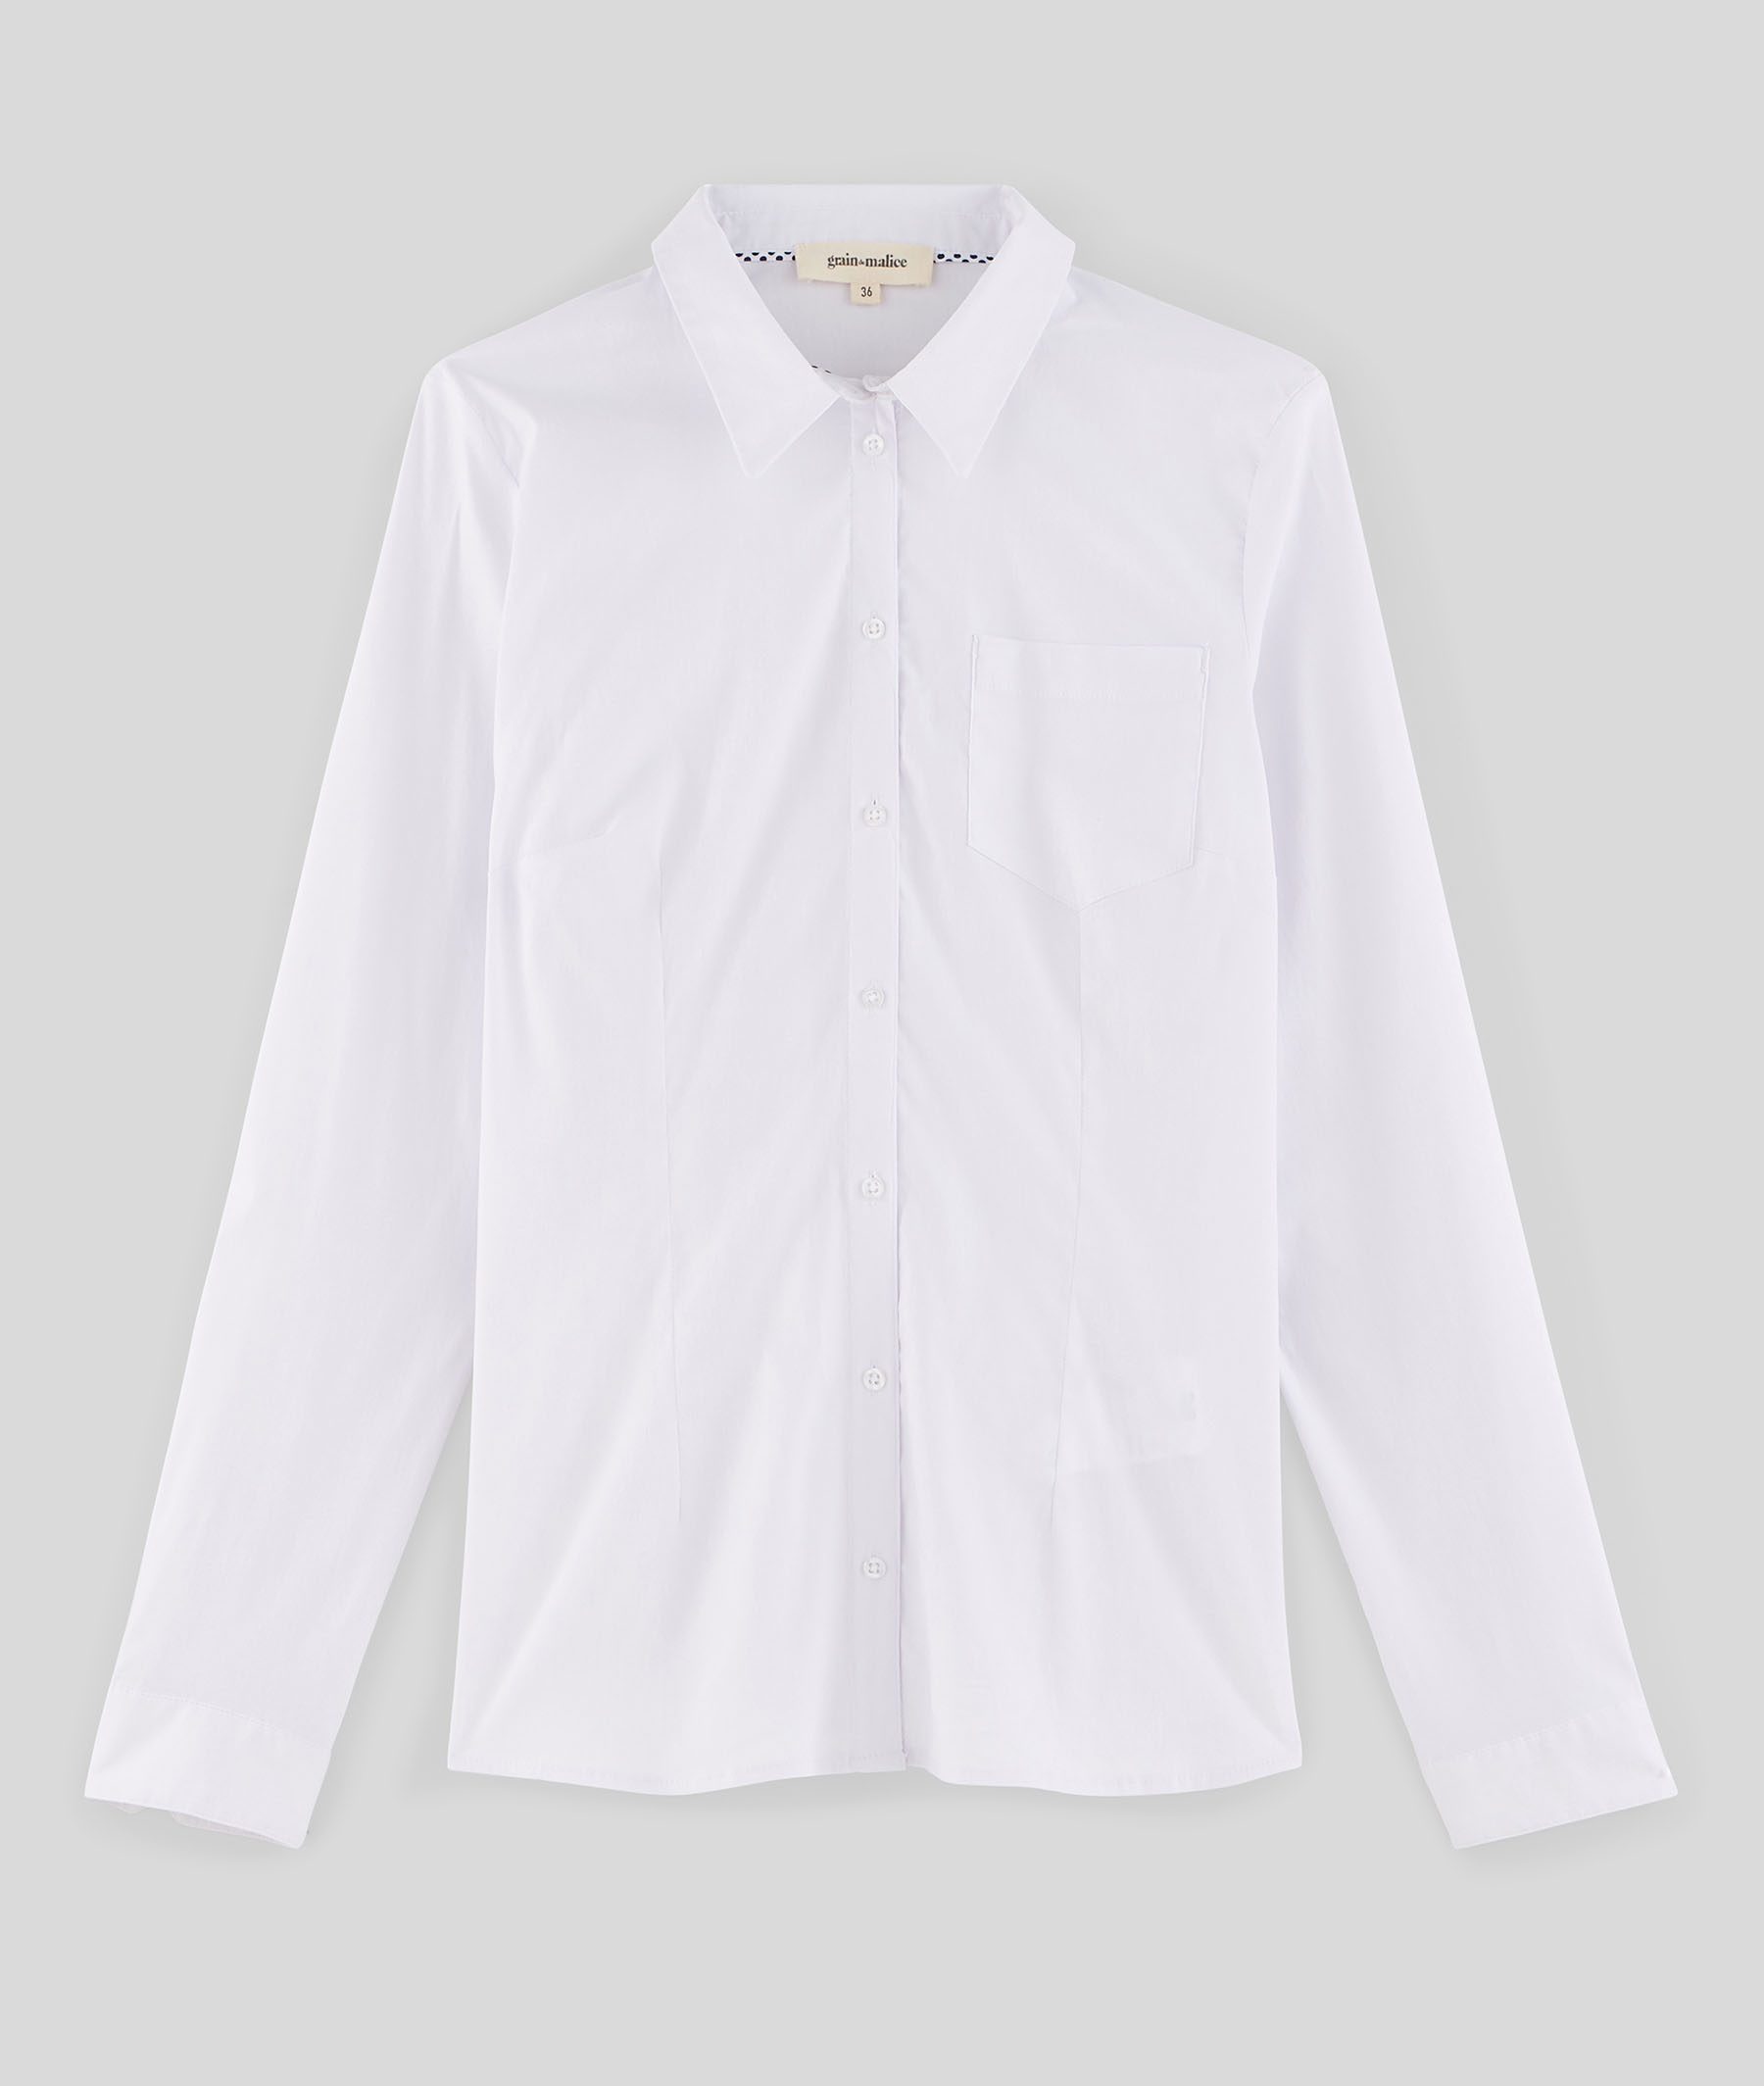 Chemise blanche manches longues ECRU